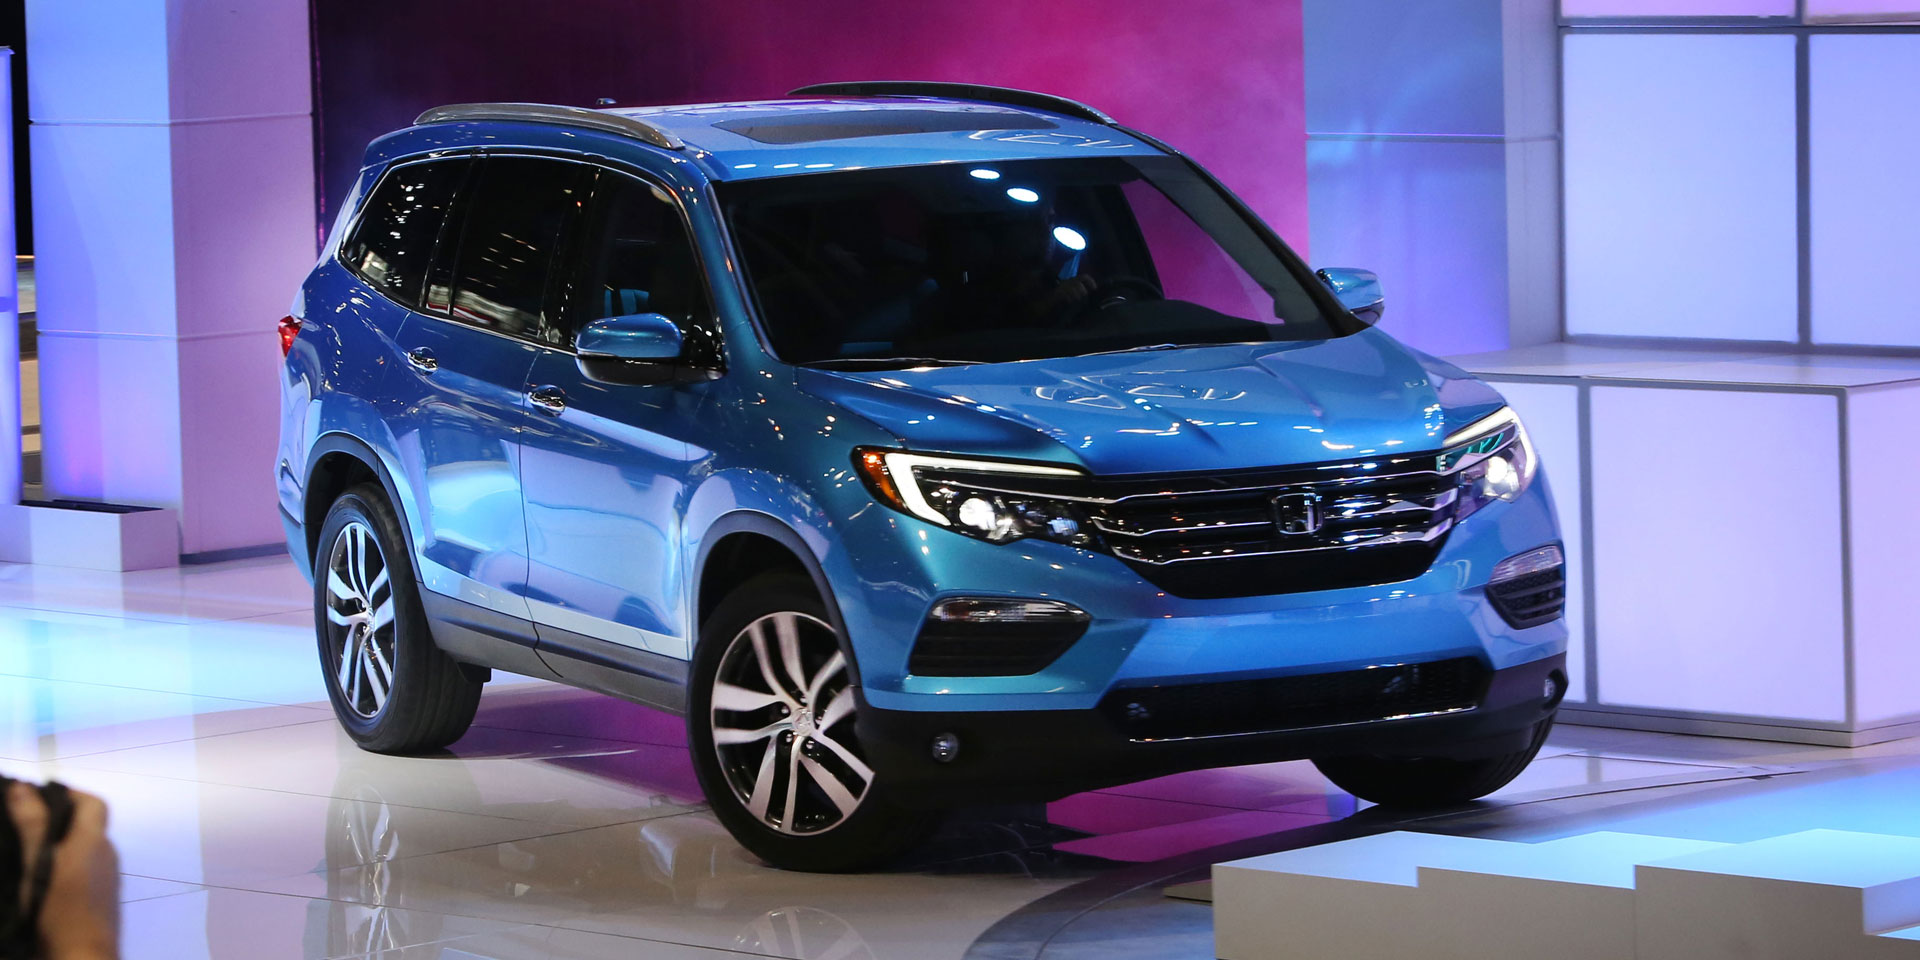 2016 Honda Pilot Vehicles On Display Chicago Auto Show